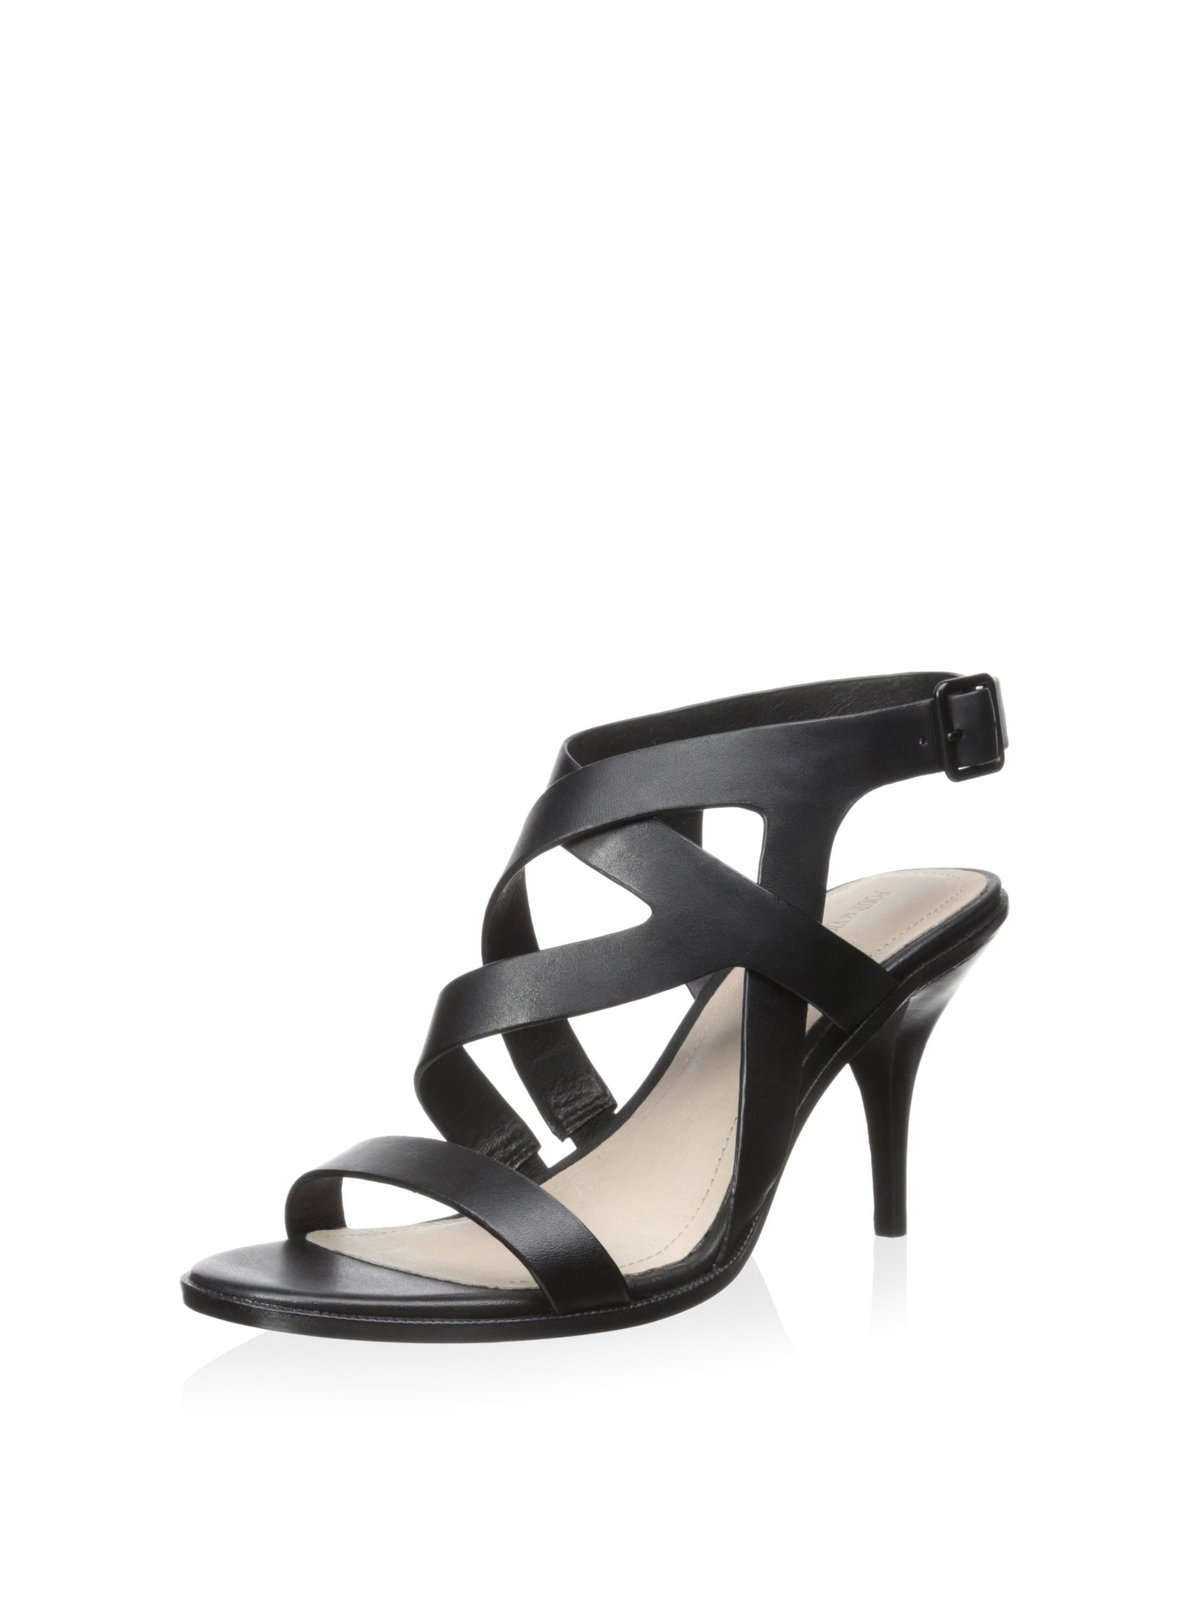 Pour La Victoire Maura Strappy Dress Sandals - Black, 7.5 M US